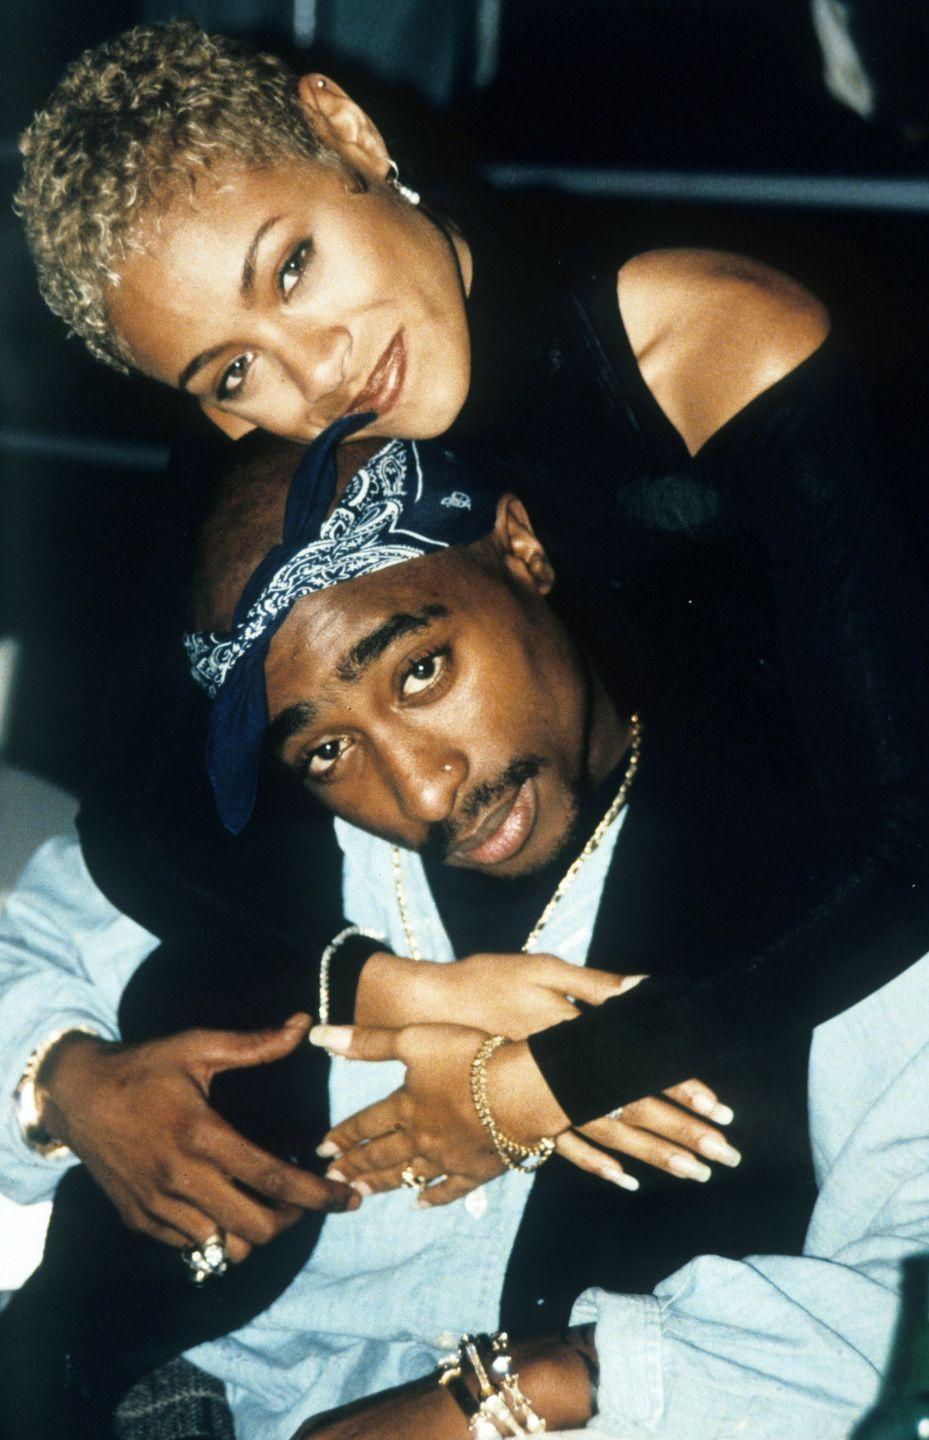 "<p>You might have heard a rumor or two about the relationship that existed between the late rap powerhouse Tupac Shakur and Jada Pinkett Smith, but did you know that the pair met for the first time while studying at Baltimore School for the Arts in Maryland? Pinkett Smith remembers their first encounter like it was yesterday, sharing the memory in an <a href=""https://people.com/music/jada-pinkett-smith-tupac-shakur-friendship-details/"" rel=""nofollow noopener"" target=""_blank"" data-ylk=""slk:interview"" class=""link rapid-noclick-resp"">interview</a>: ""It was the first day and he came over to me and introduced himself. And in high school, Pac was a little funny looking. Definitely from looking at him, wasn't necessarily the type of cat that I would even, like, deal with.""</p><p>Despite her first impressions of her classmate, Pinkett Smith immediately hit it off with Tupac, and they bonded instantly. ""He was one of my best friends,"" she spoke of the rapper fondly. ""He was like a brother.""</p>"